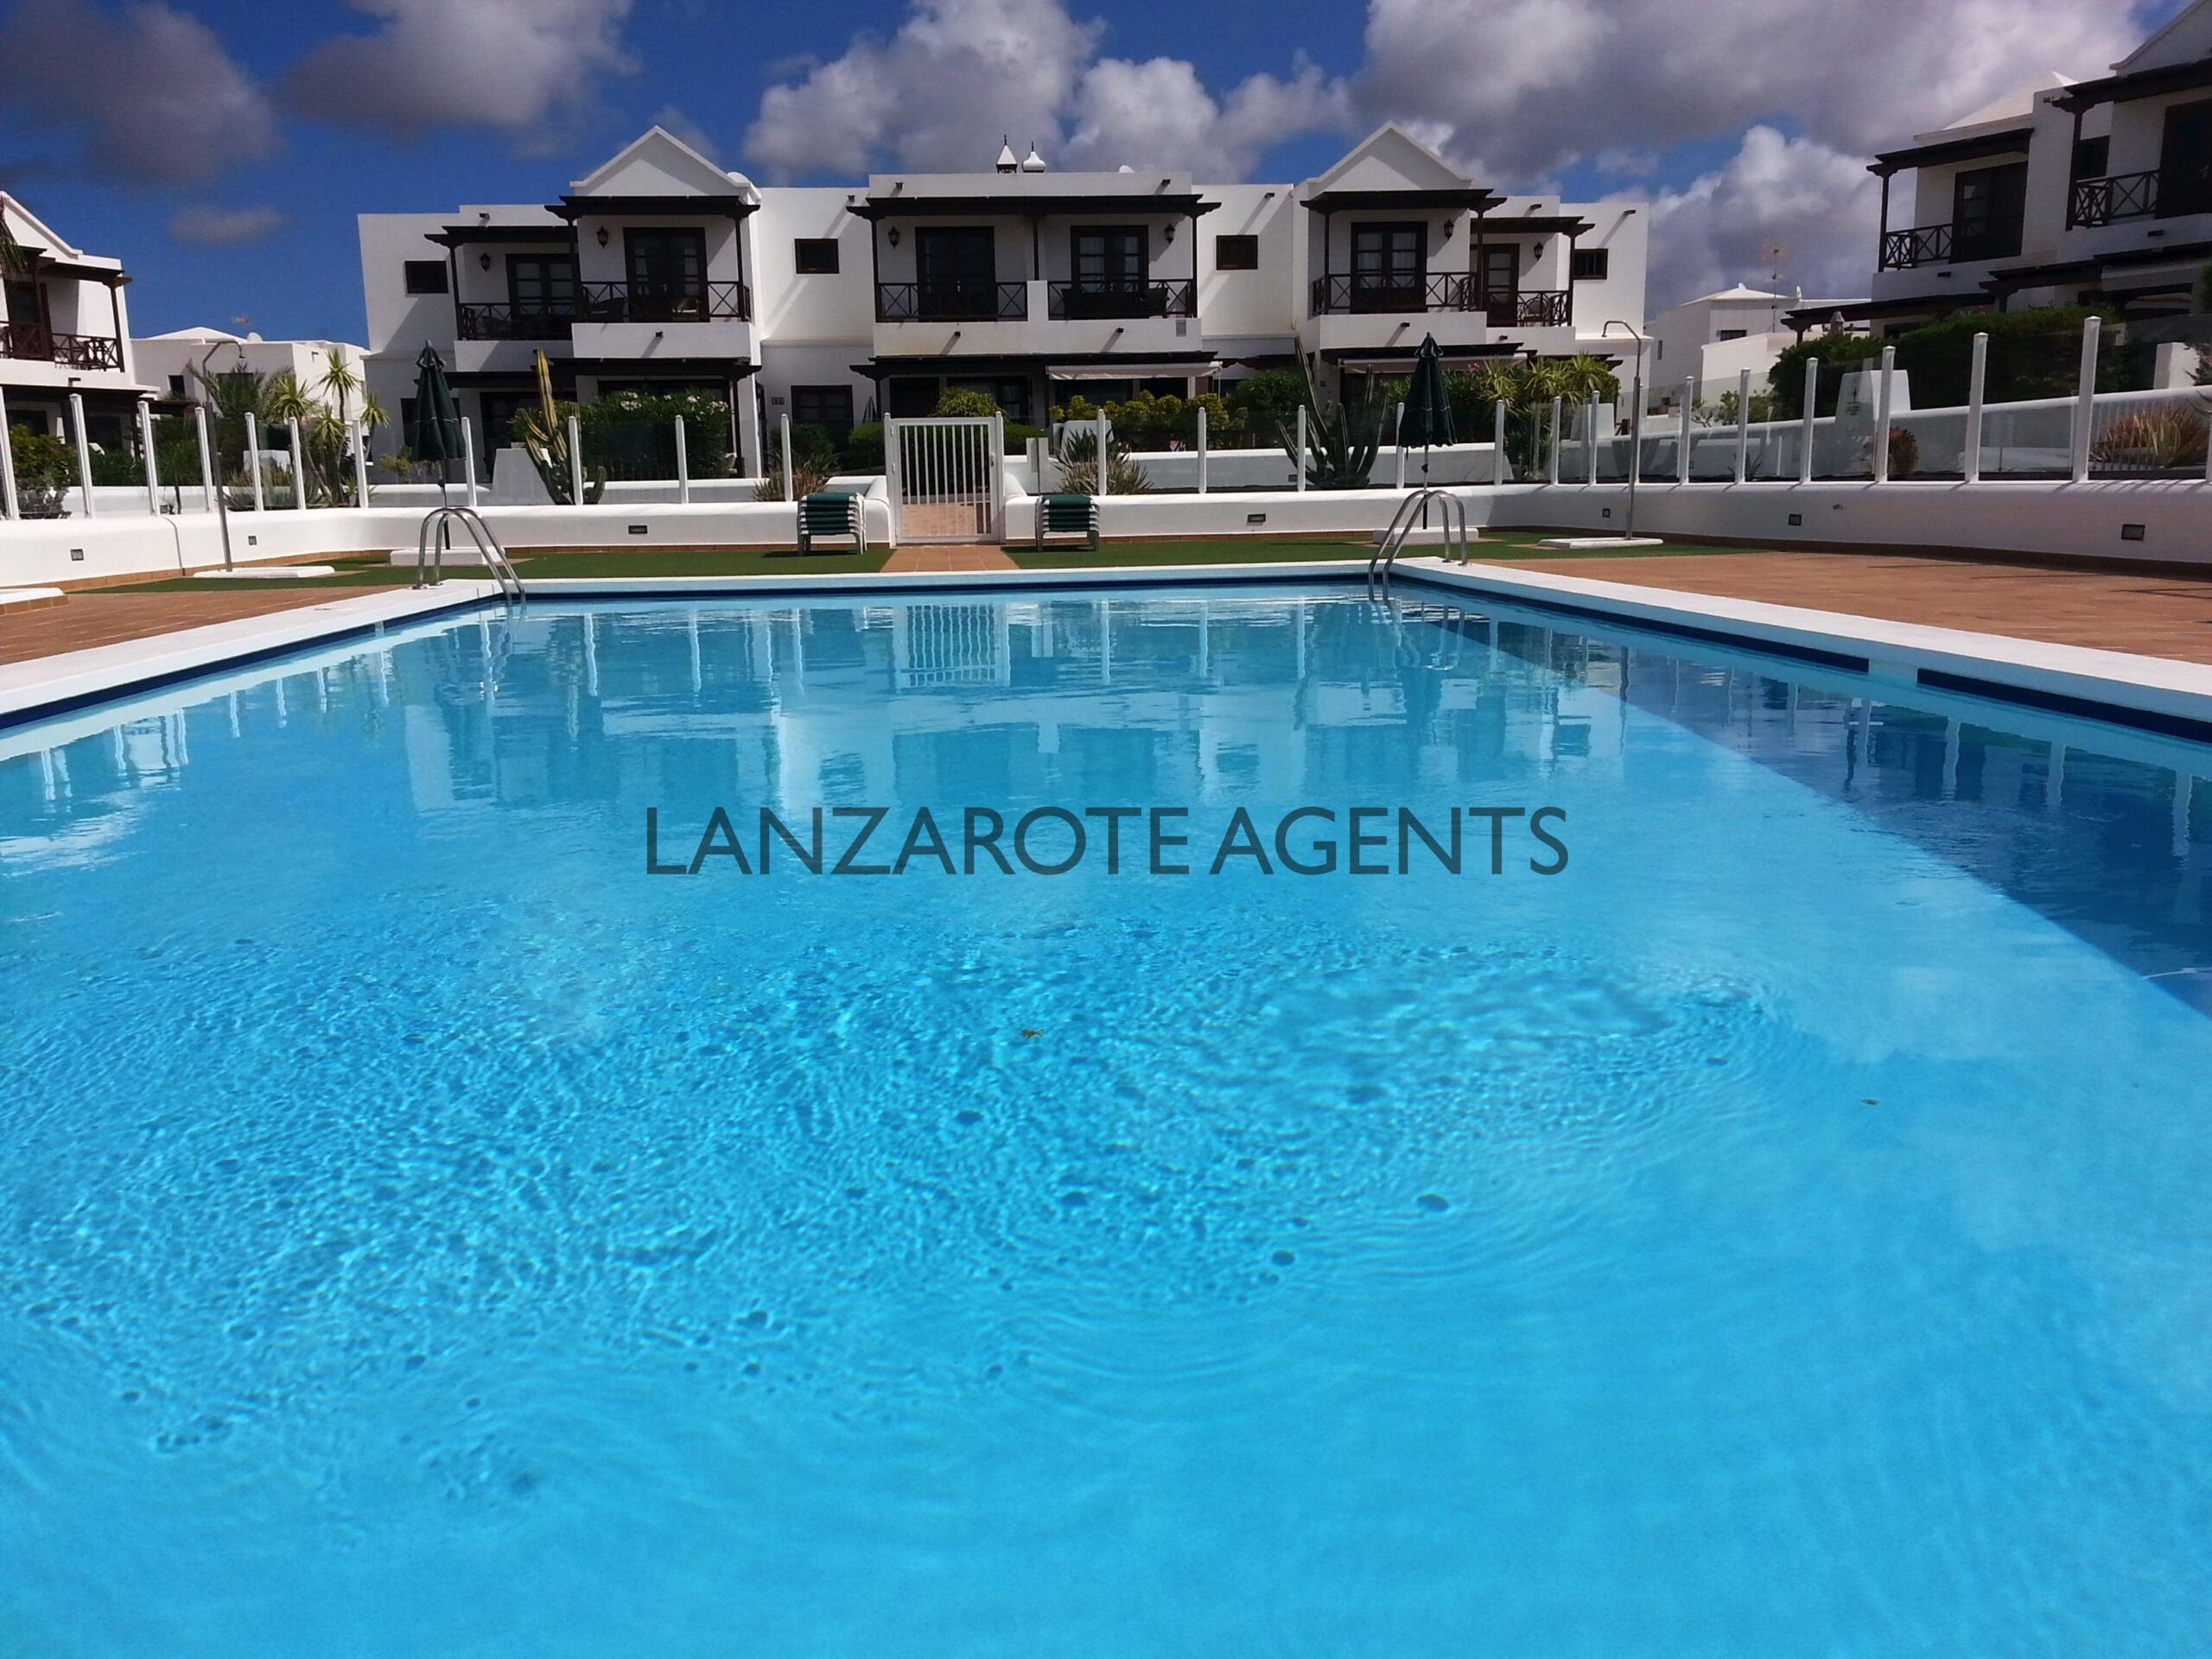 Fabulous Duplex 3 Bedroom Terraced Apartment with Communal Pool at only 2 min walk to the Sea Promenade